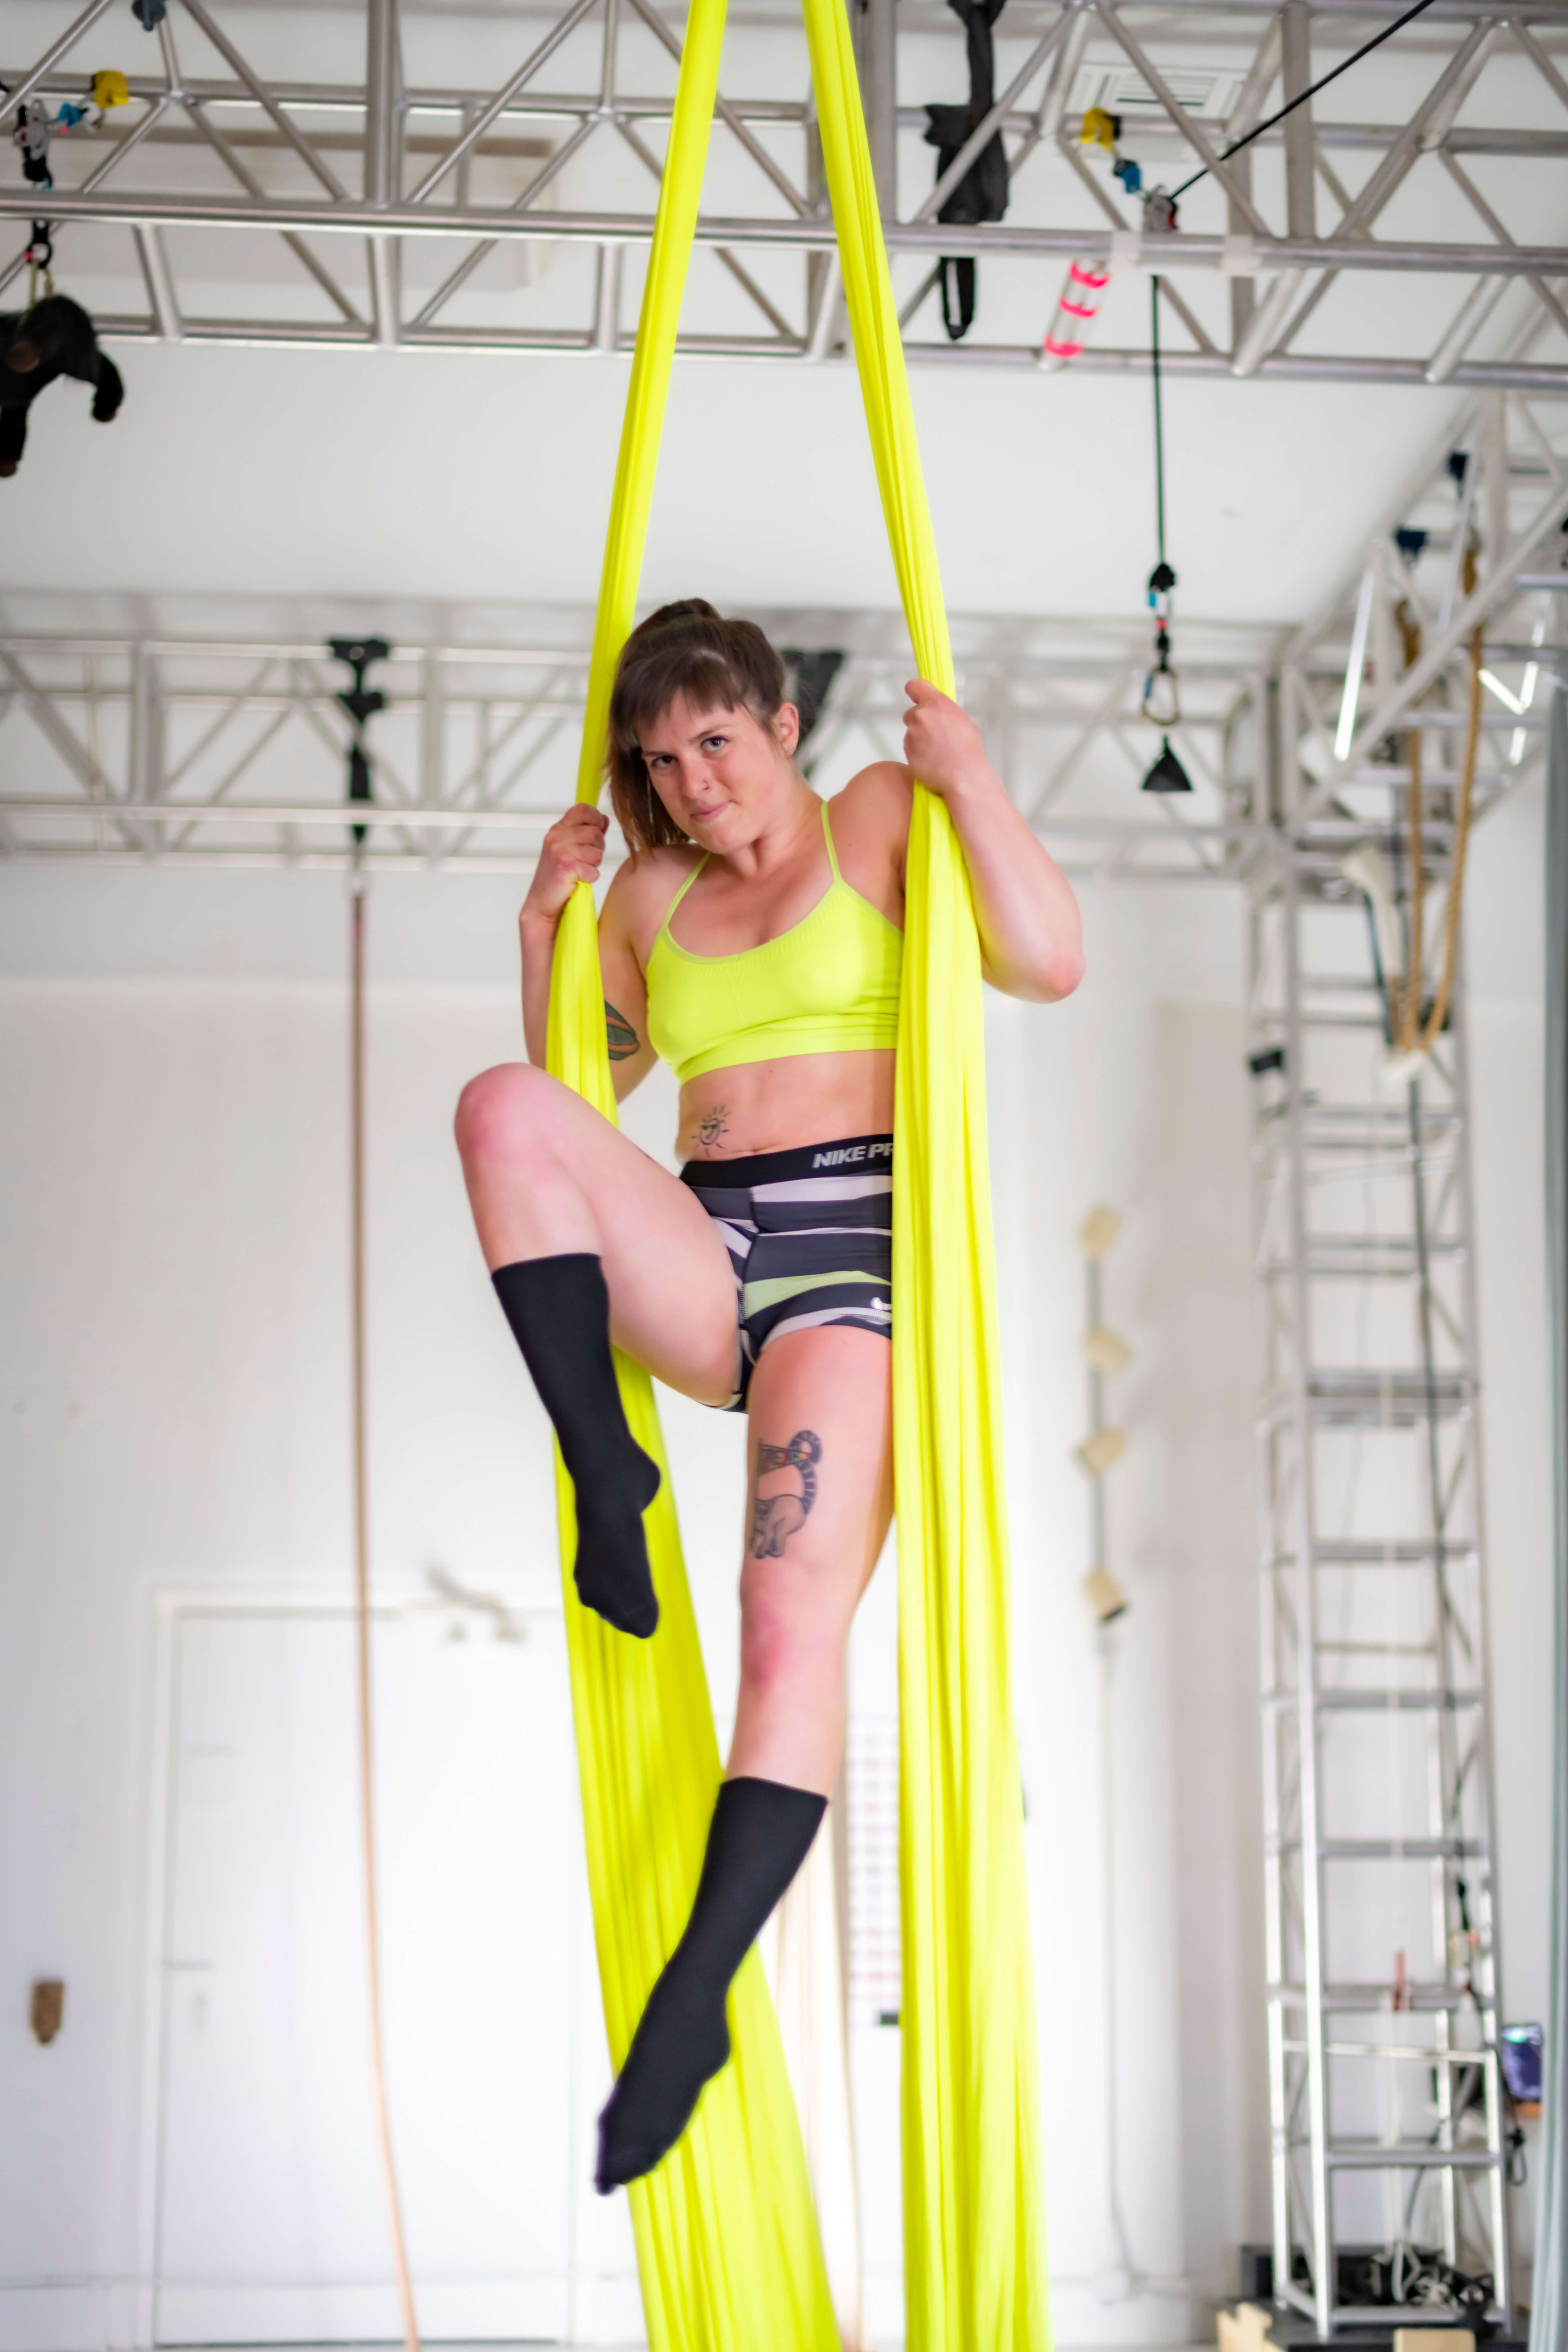 Photoshoot at Afterglow Aerial Arts in Portland Oregon.  Models Jolene and Martha.  Assisted by Dan.